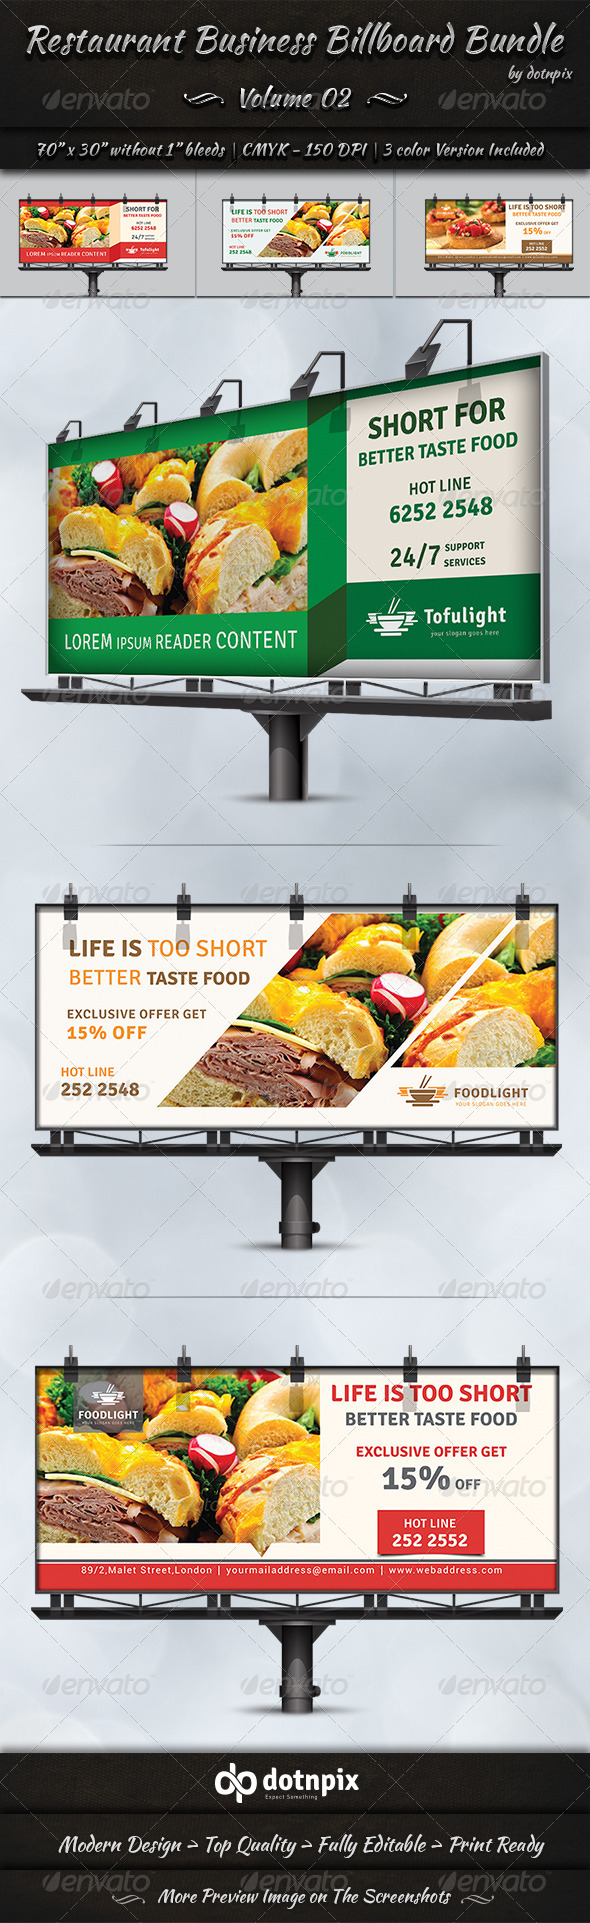 Restaurant Business Billboard Bundle Volume 2